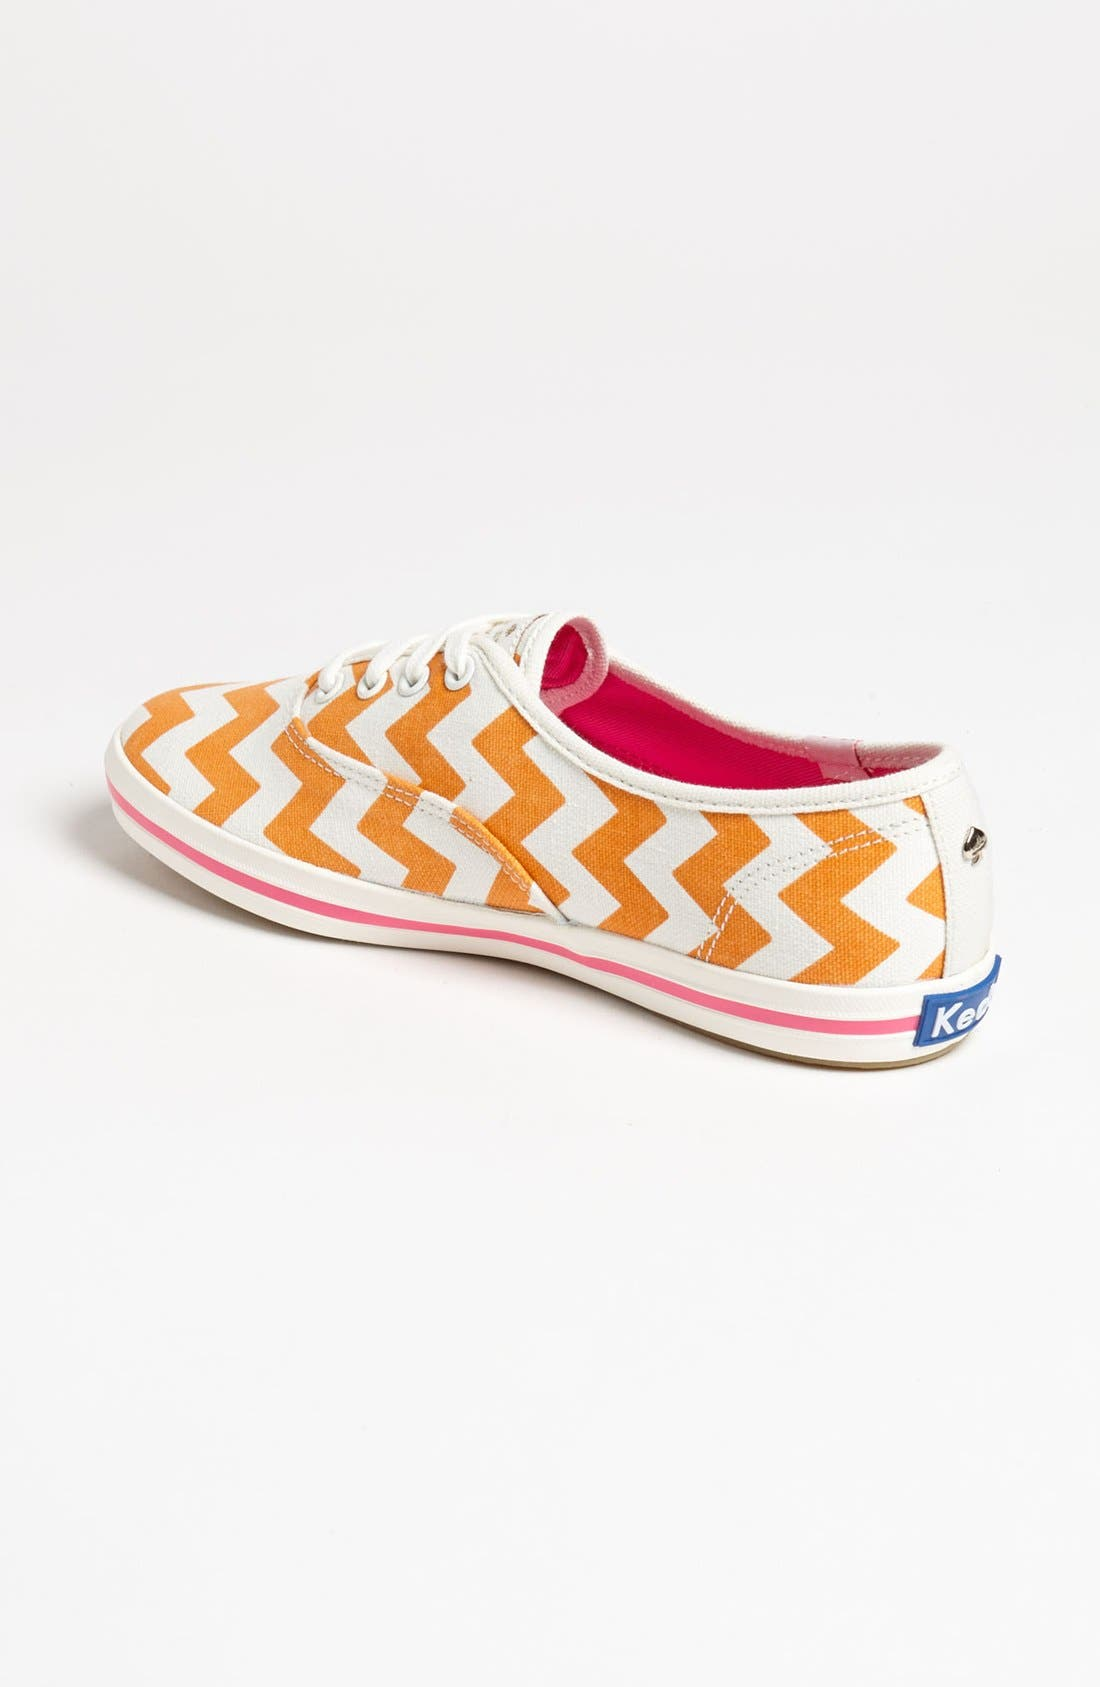 ,                             Keds<sup>®</sup> for kate spade new york 'kick' sneaker,                             Alternate thumbnail 15, color,                             810